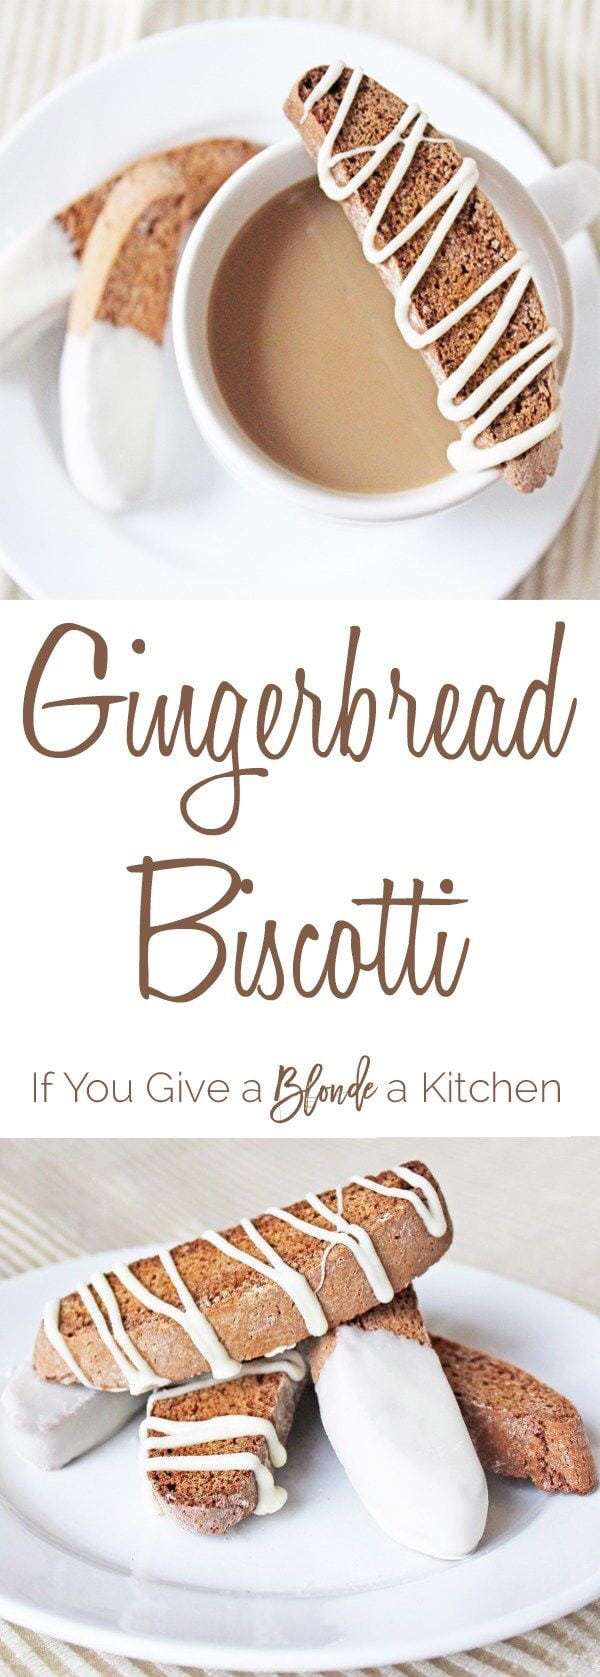 Christmas Gingerbread Recipes: Gingerbread Biscotti